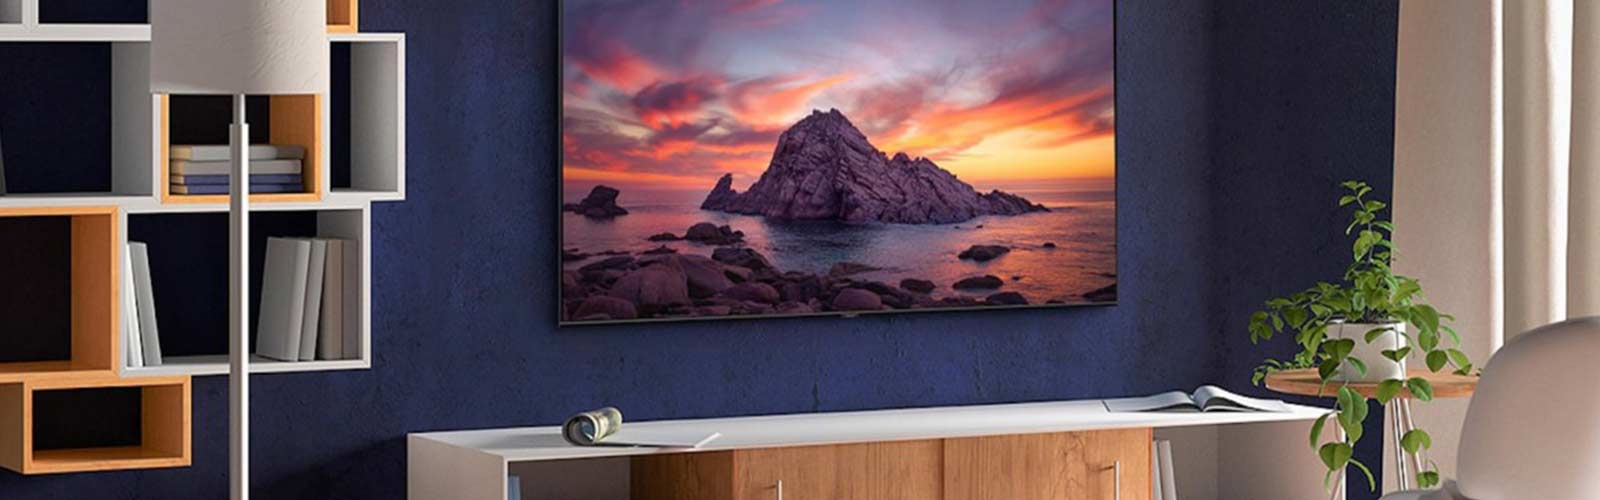 TVs & Home Theaters